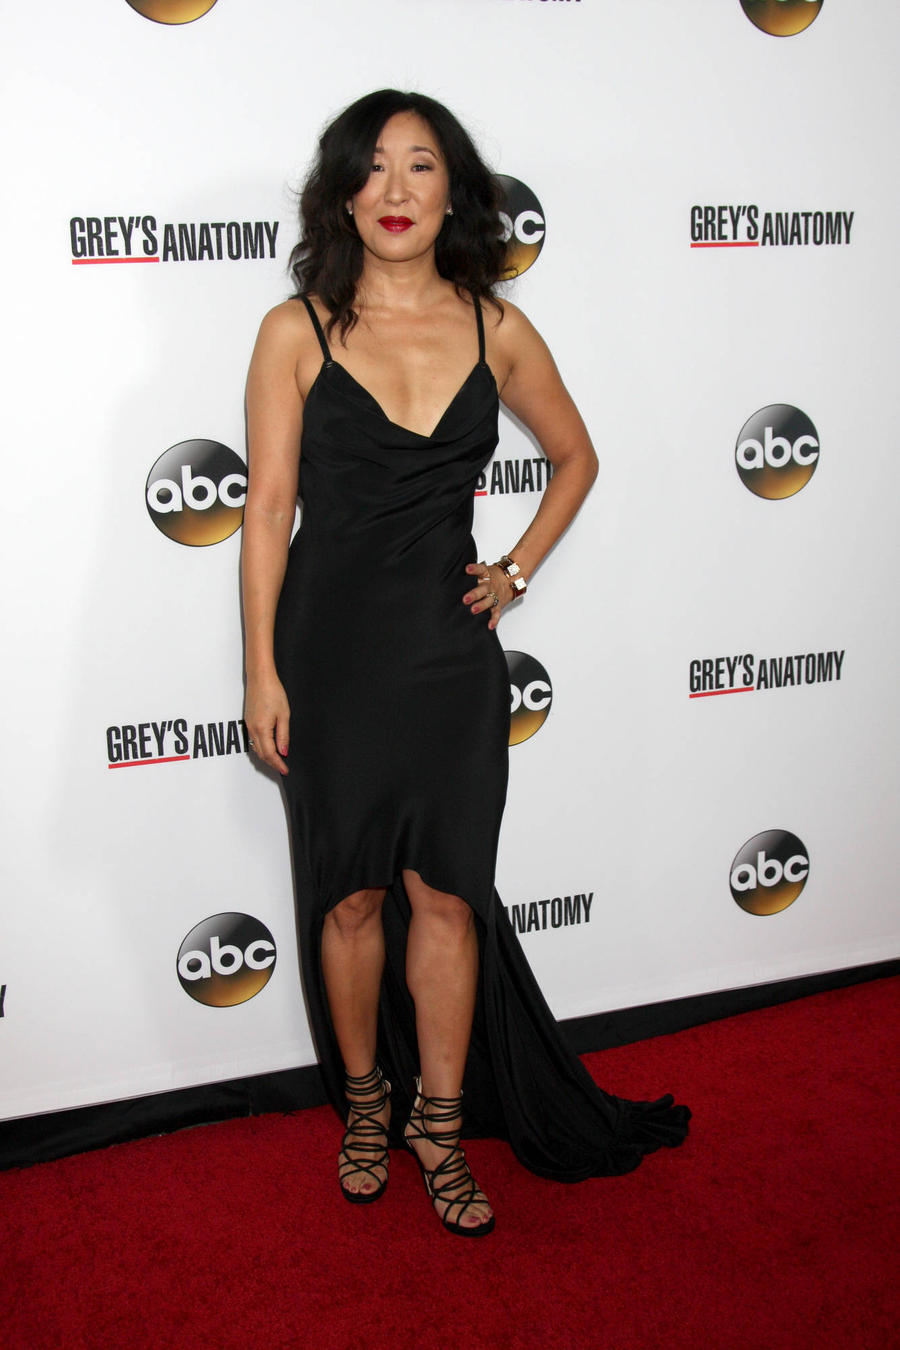 Sandra Oh: 'I Have No Plans To Return To Grey's Anatomy'